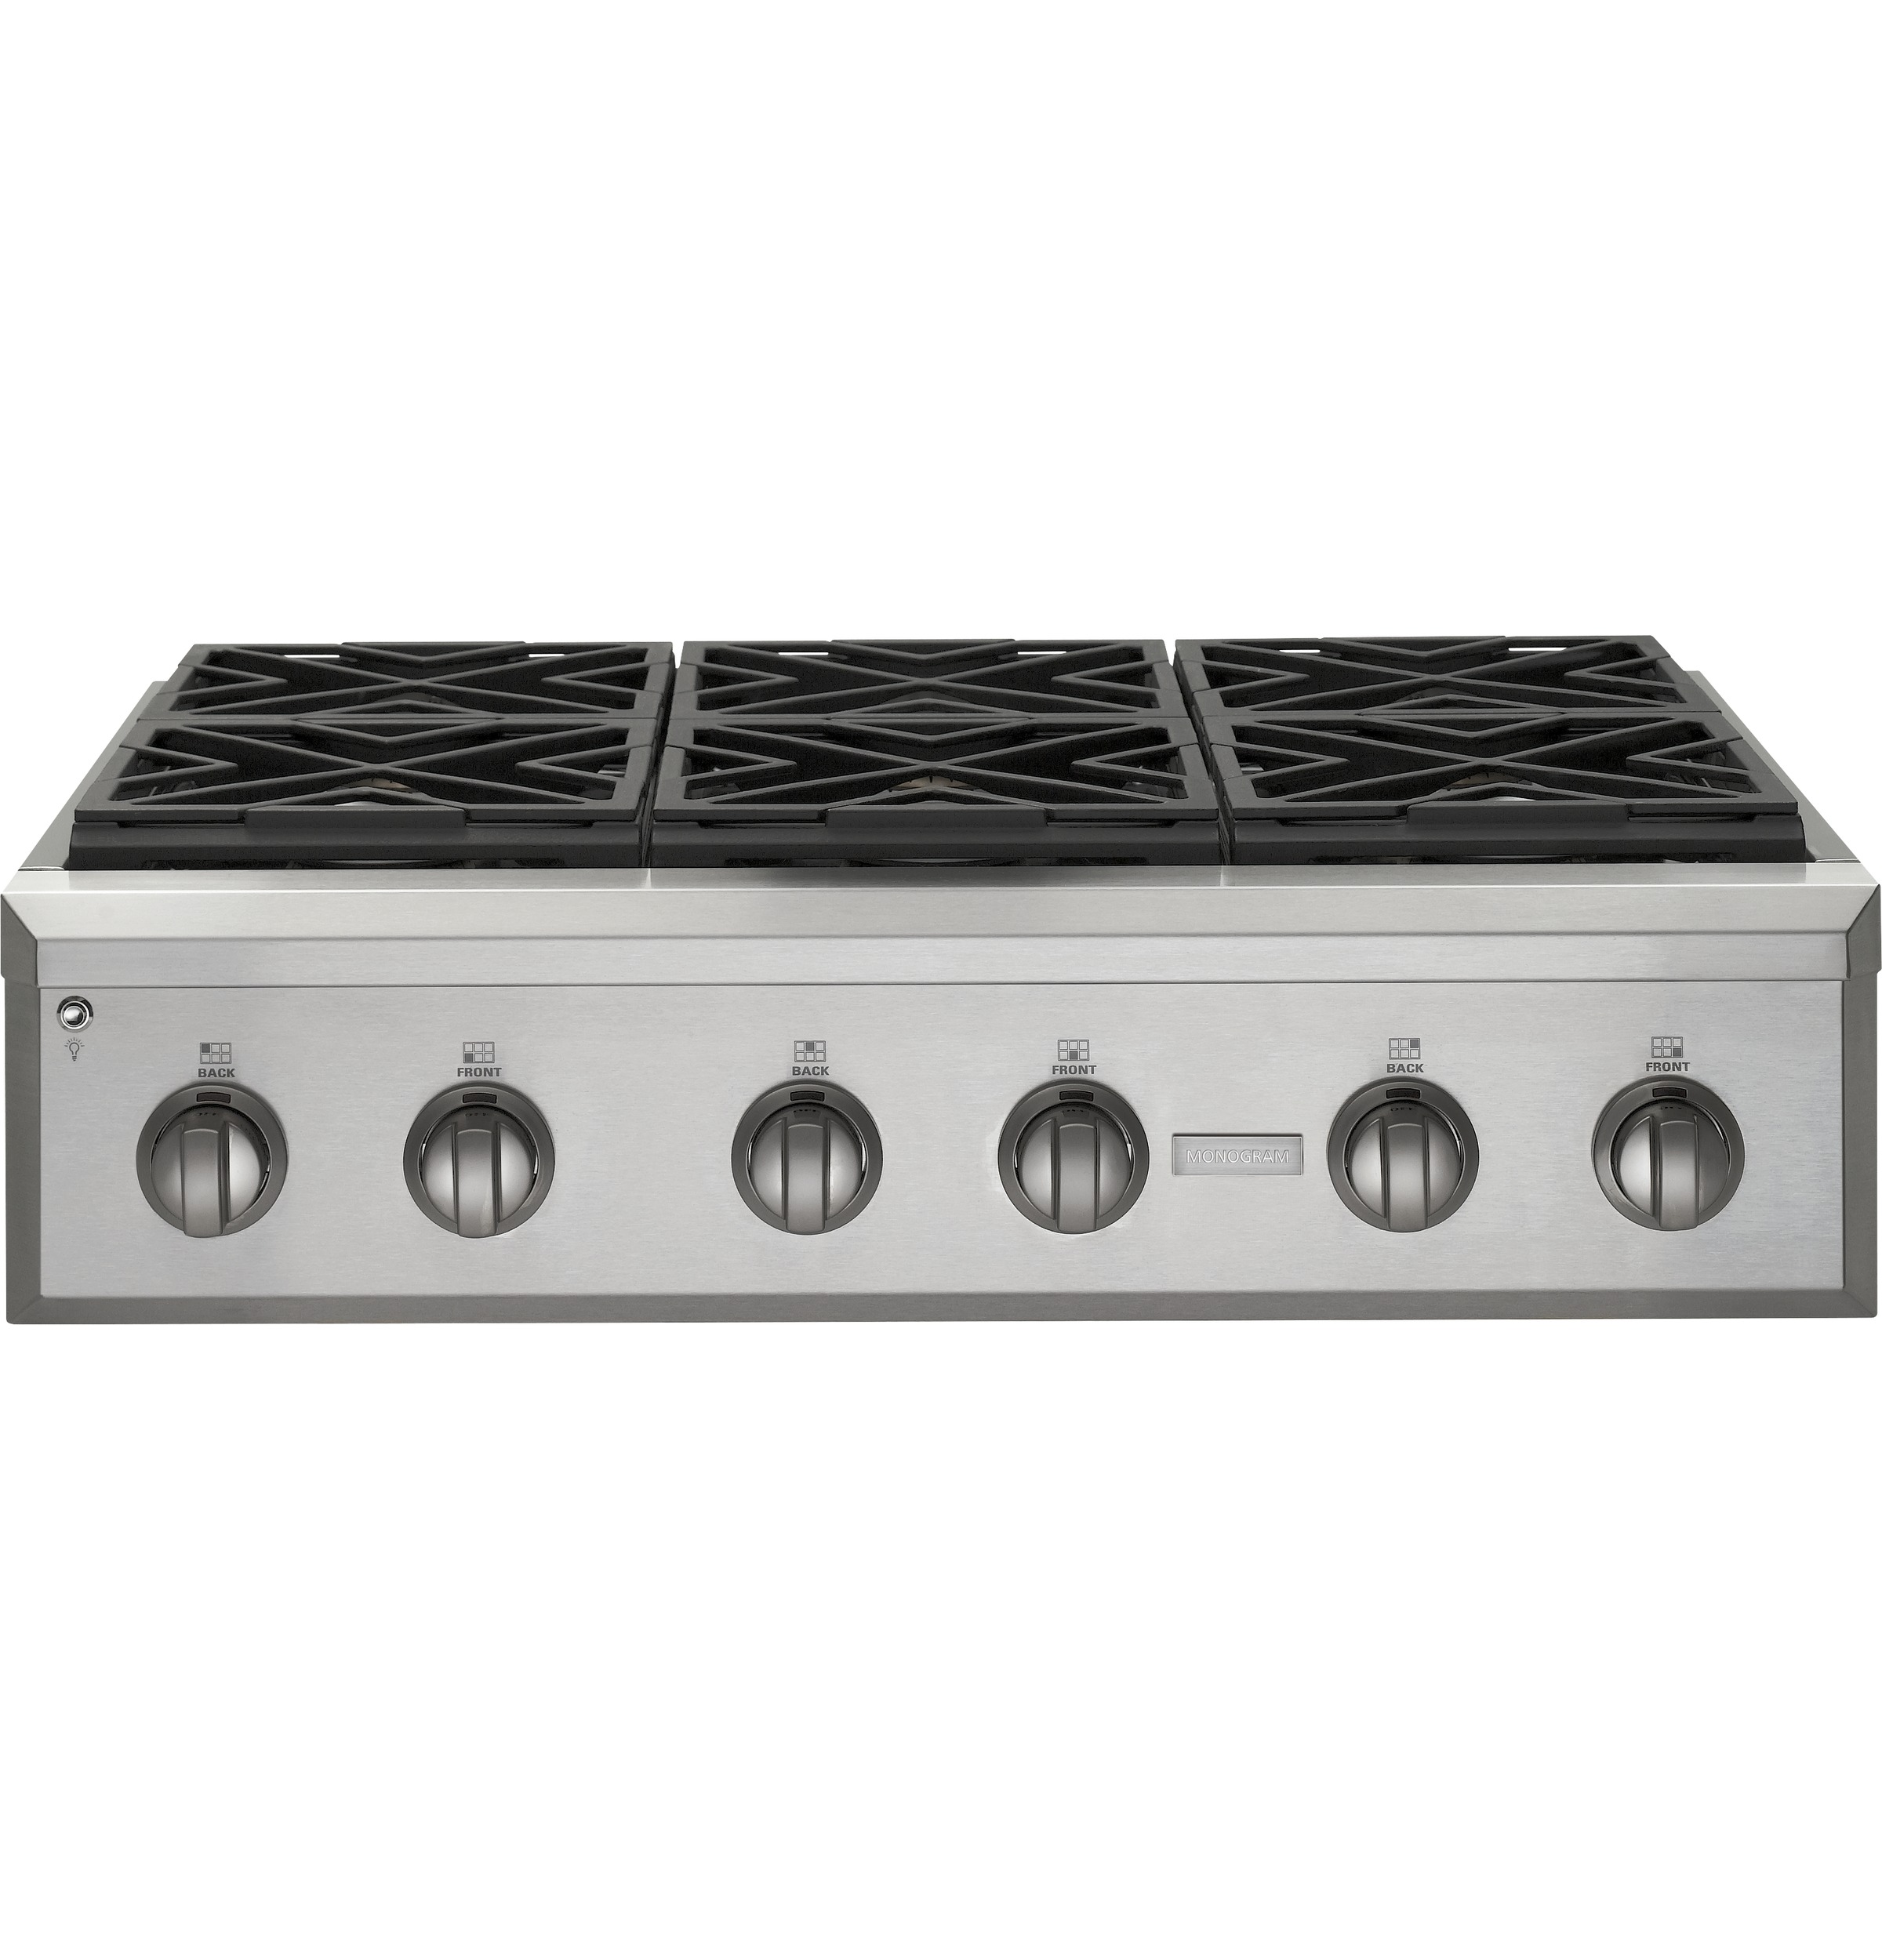 "Monogram Monogram 36"" Professional Gas Rangetop with 6 Burners (Natural Gas)"